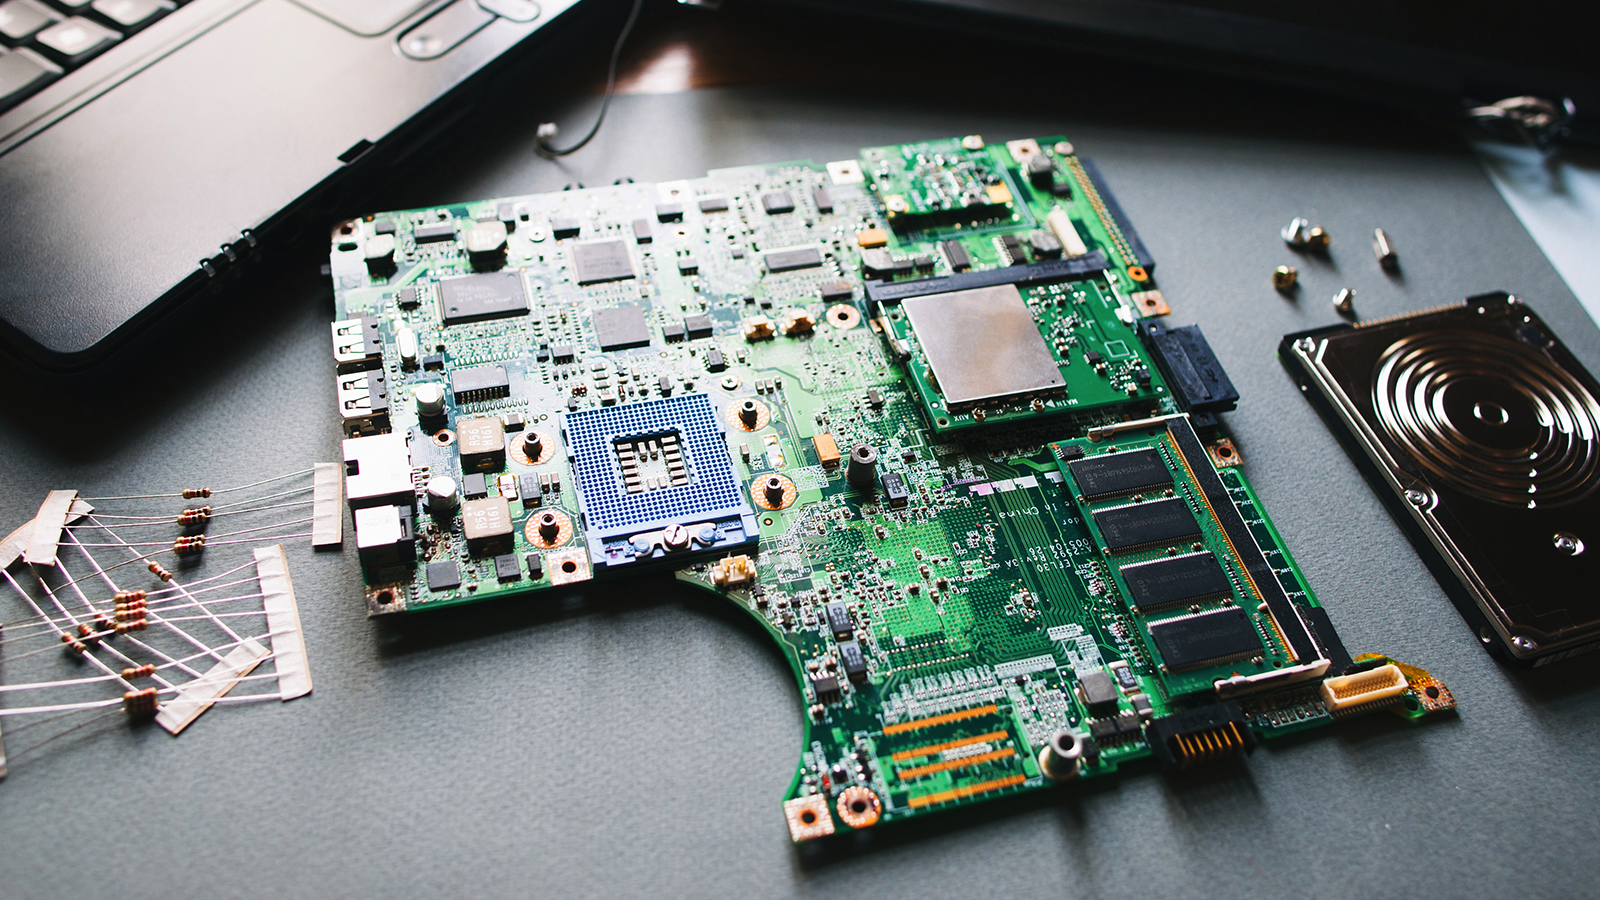 A laptop motherboard on a table.